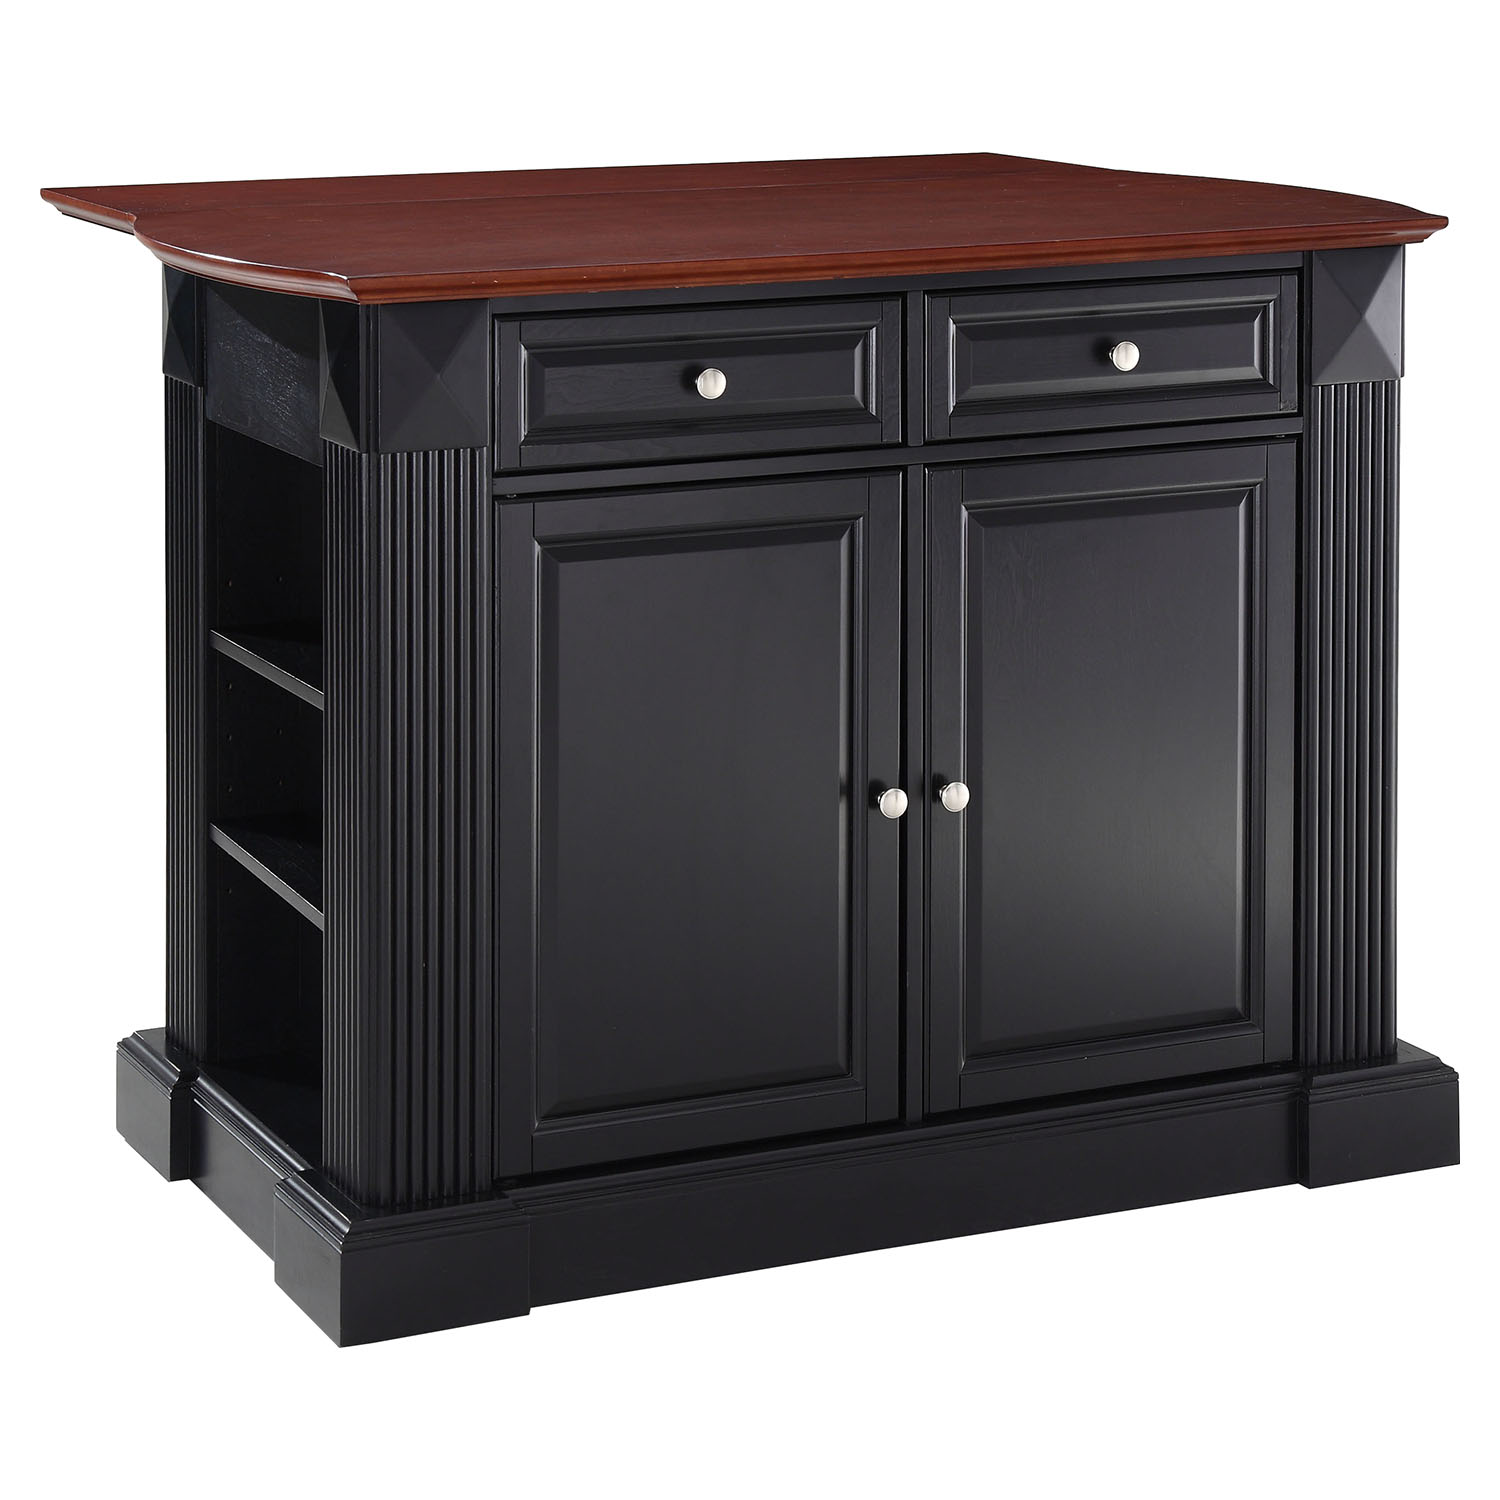 kitchen island with drop leaf backsplash designs breakfast bar top black dcg